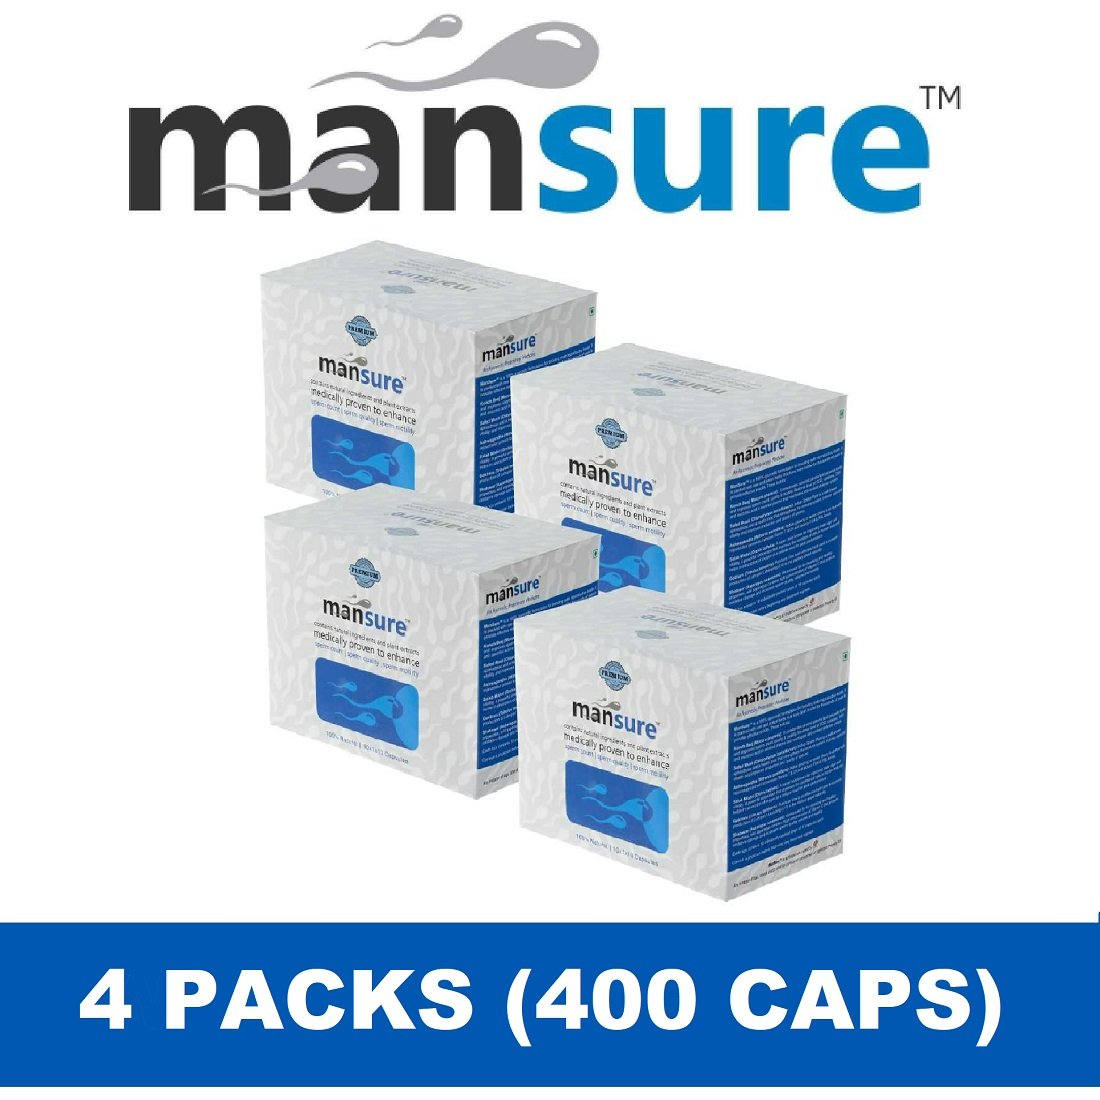 ManSure helps overcome male infertility naturally using potent herbs like Konch Beej, Gokhru, Safed Musli & more.